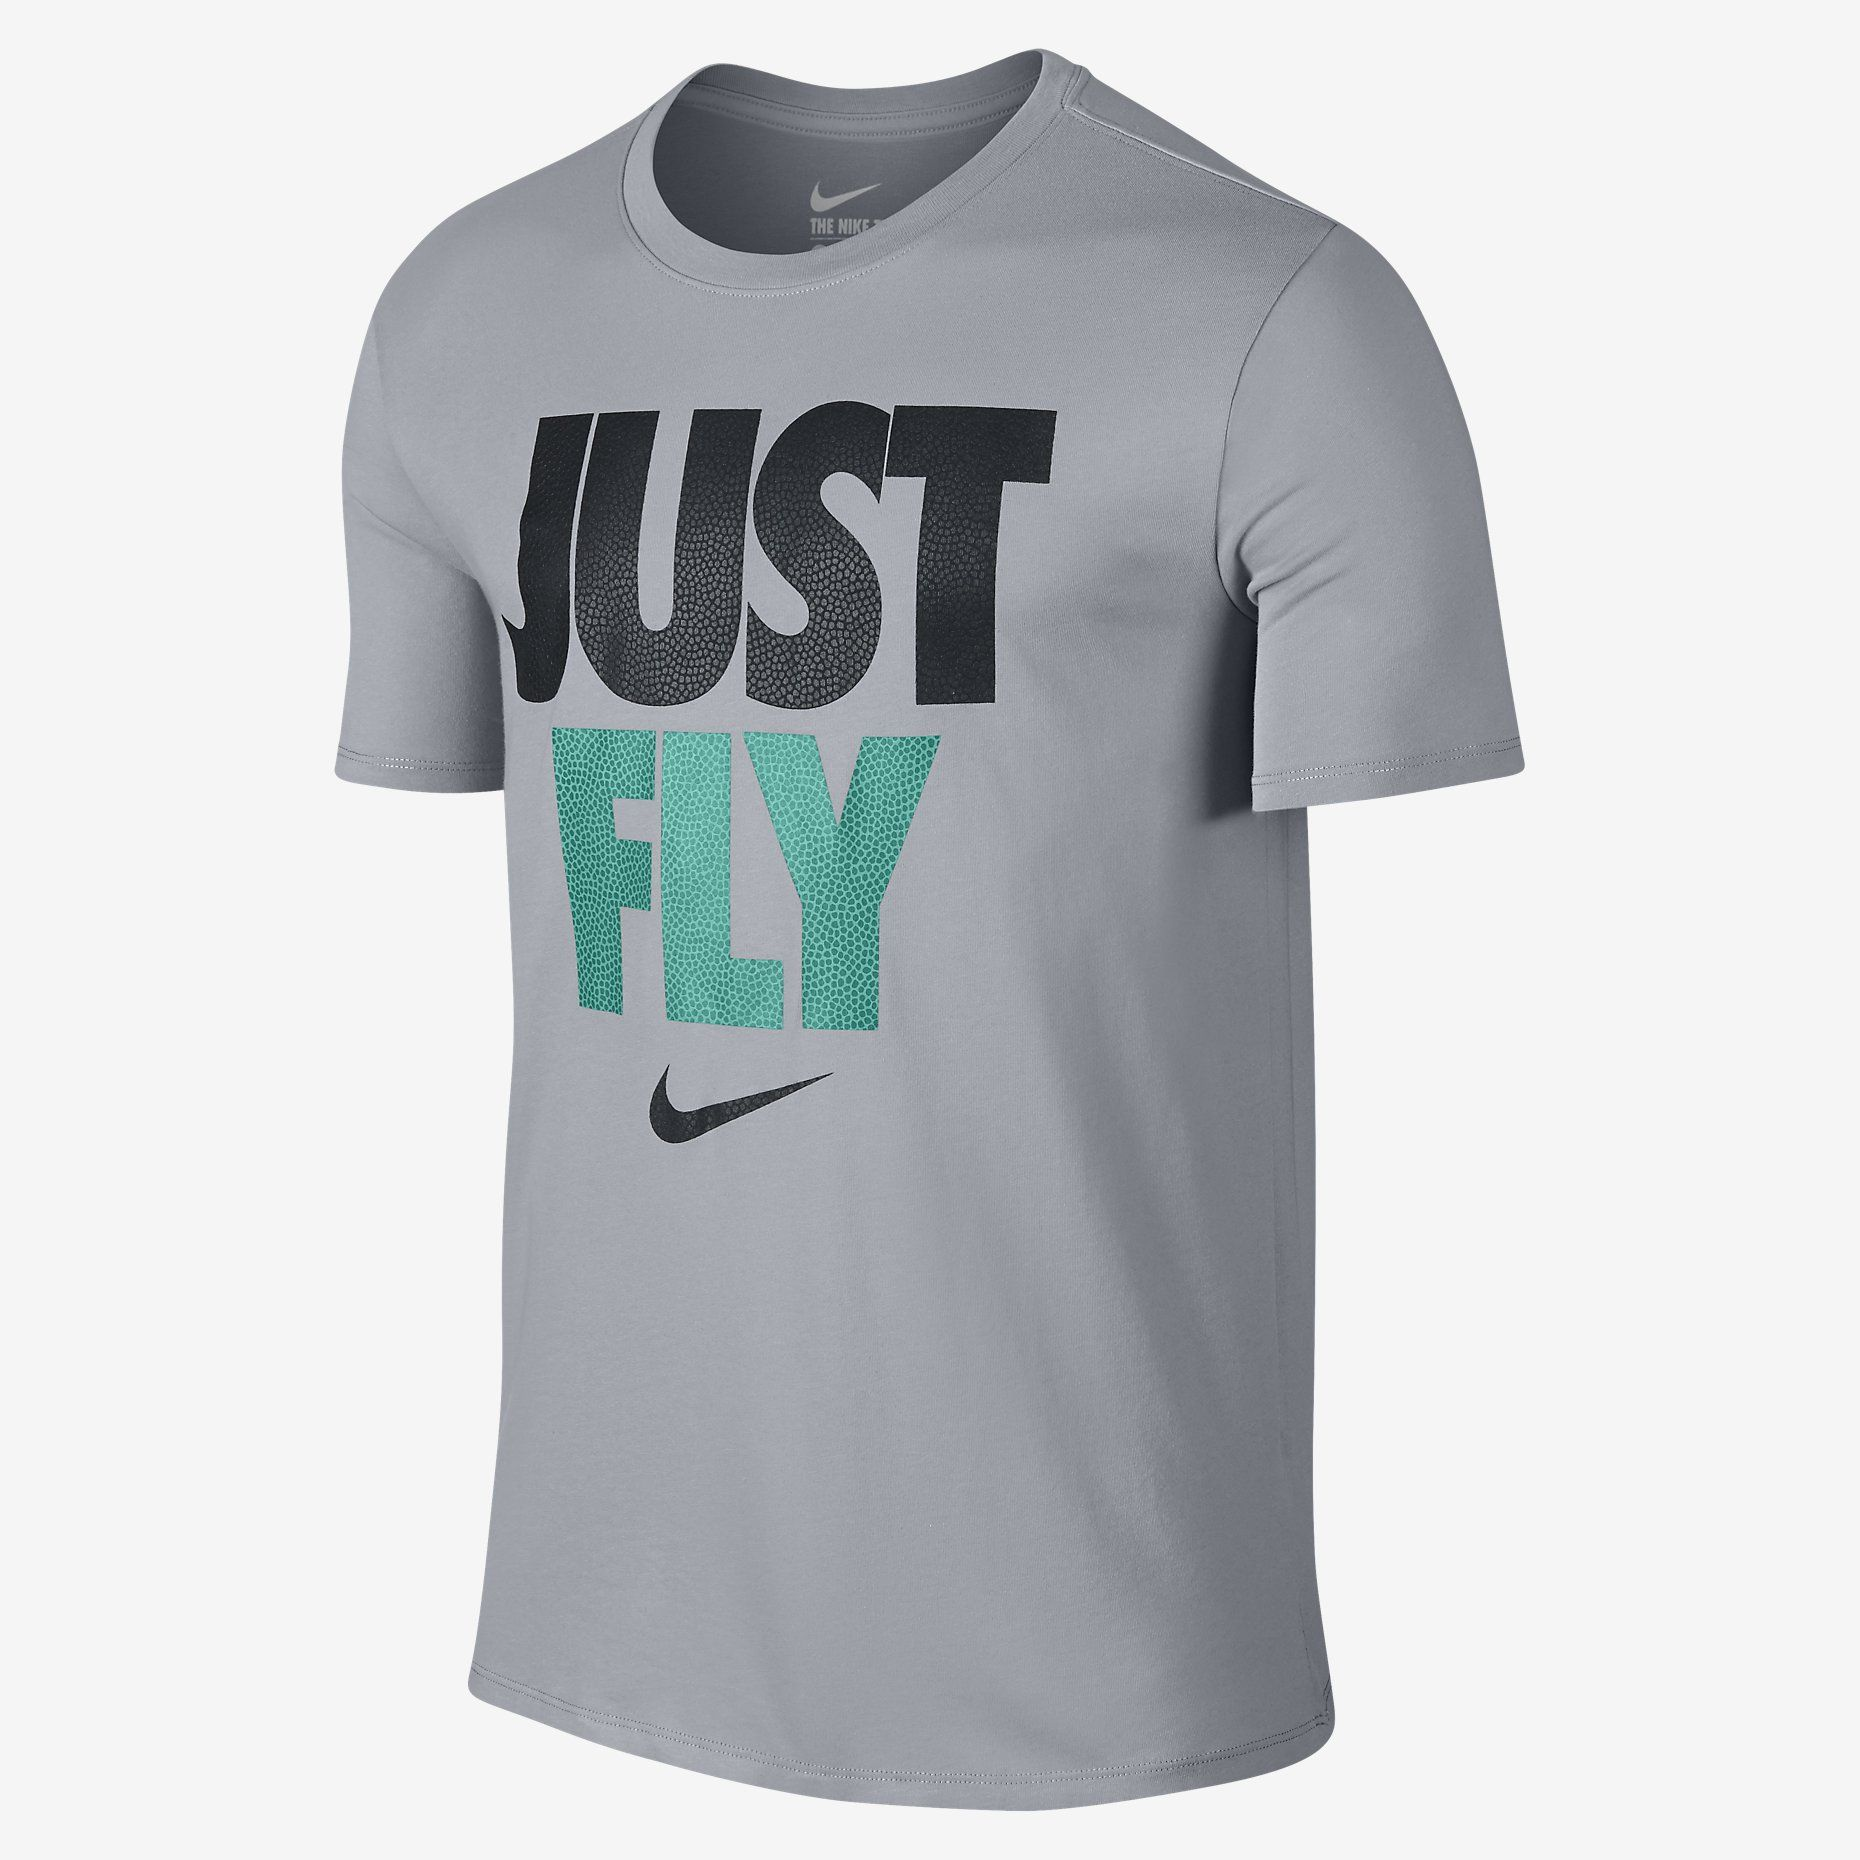 Camiseta Sportswear Nike Just Do It Cinza e Preta